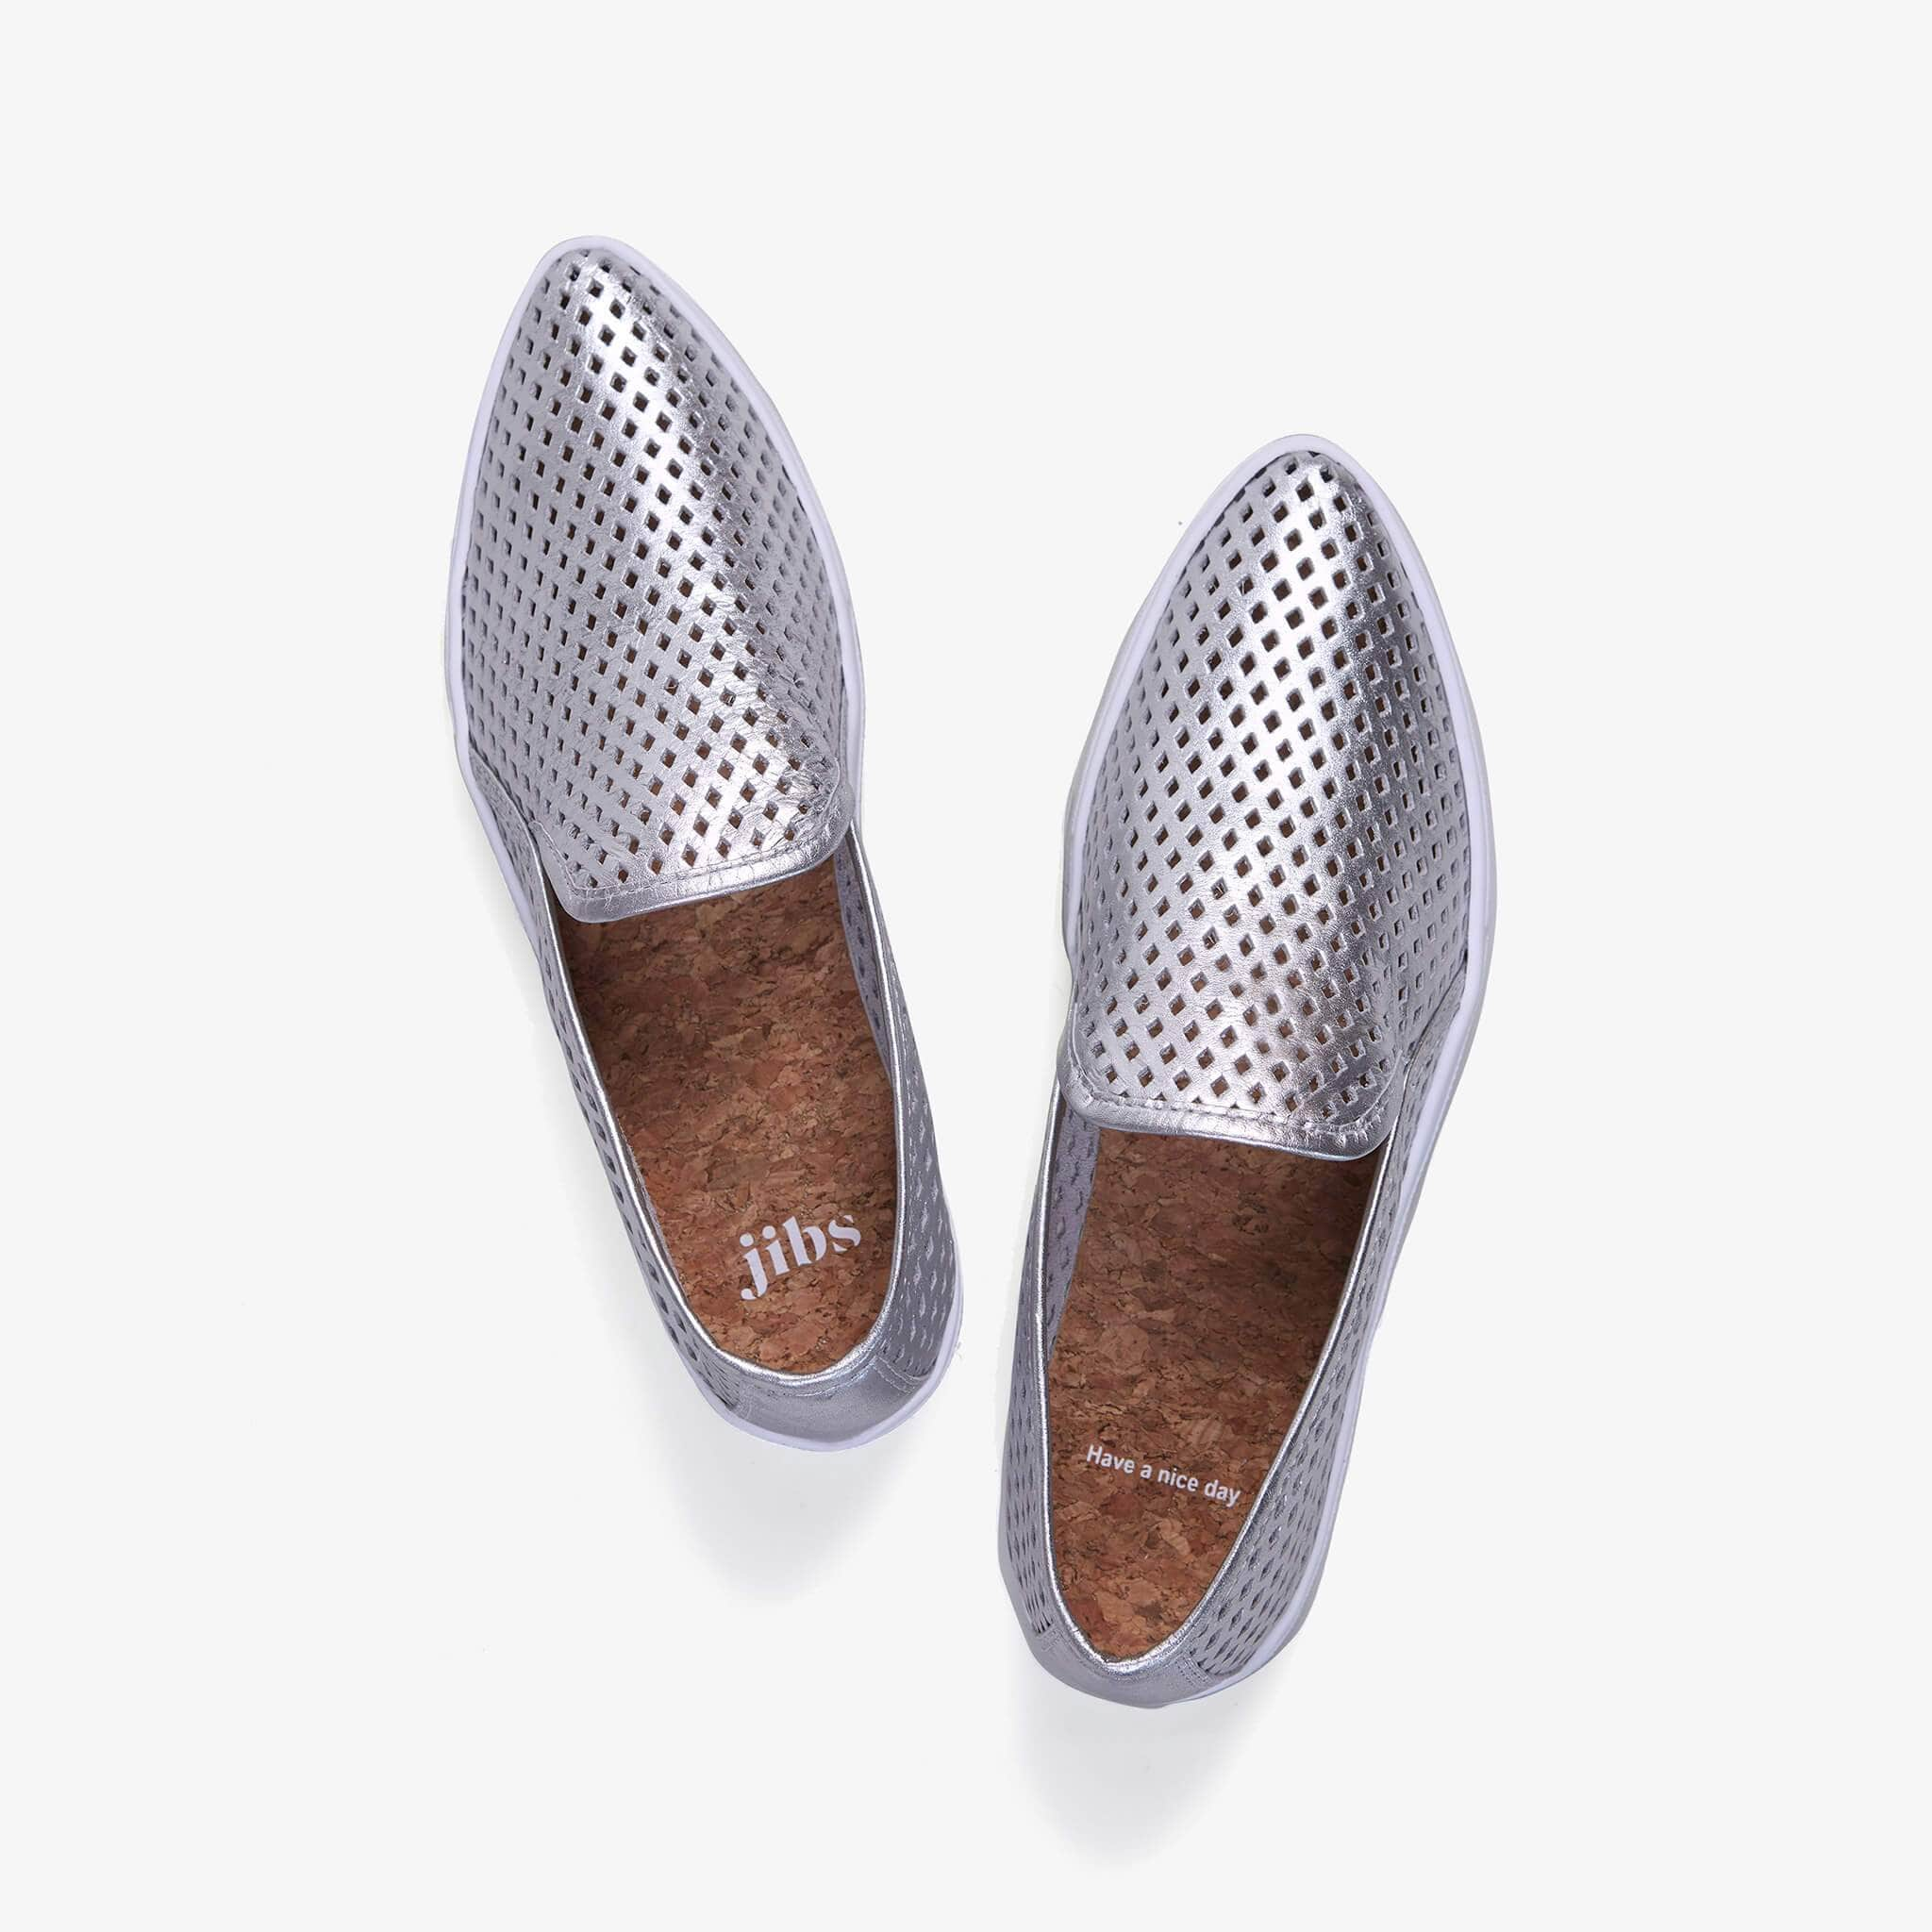 Jibs Slim Silver Slip On Sneaker Flat Top Have A Nice Day